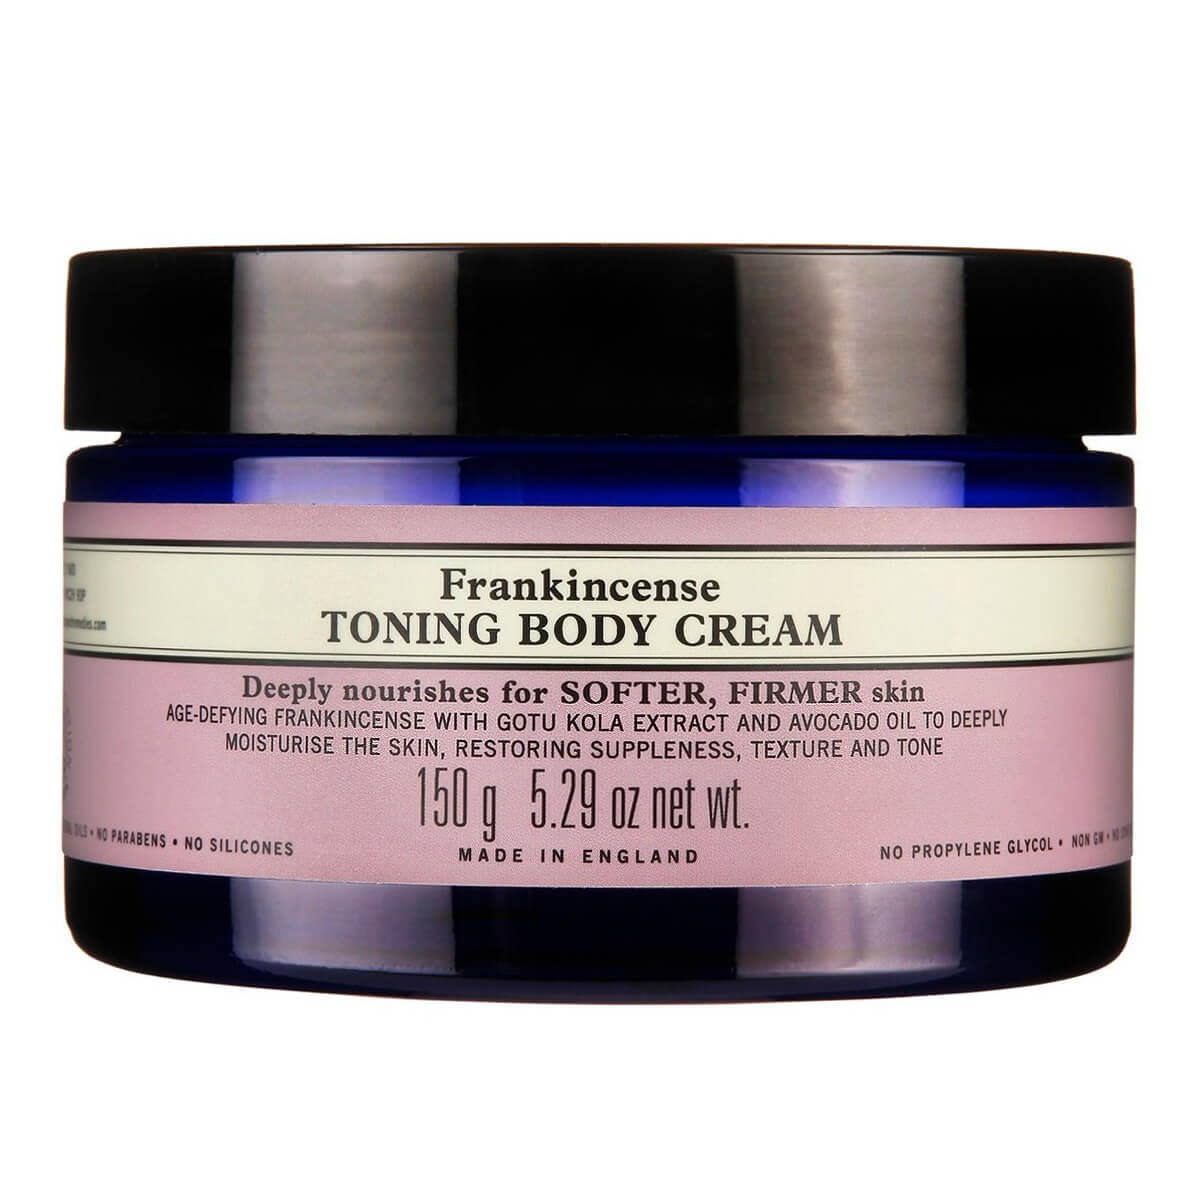 Neal's Yard Remedies Frankincense Toning Body Cream